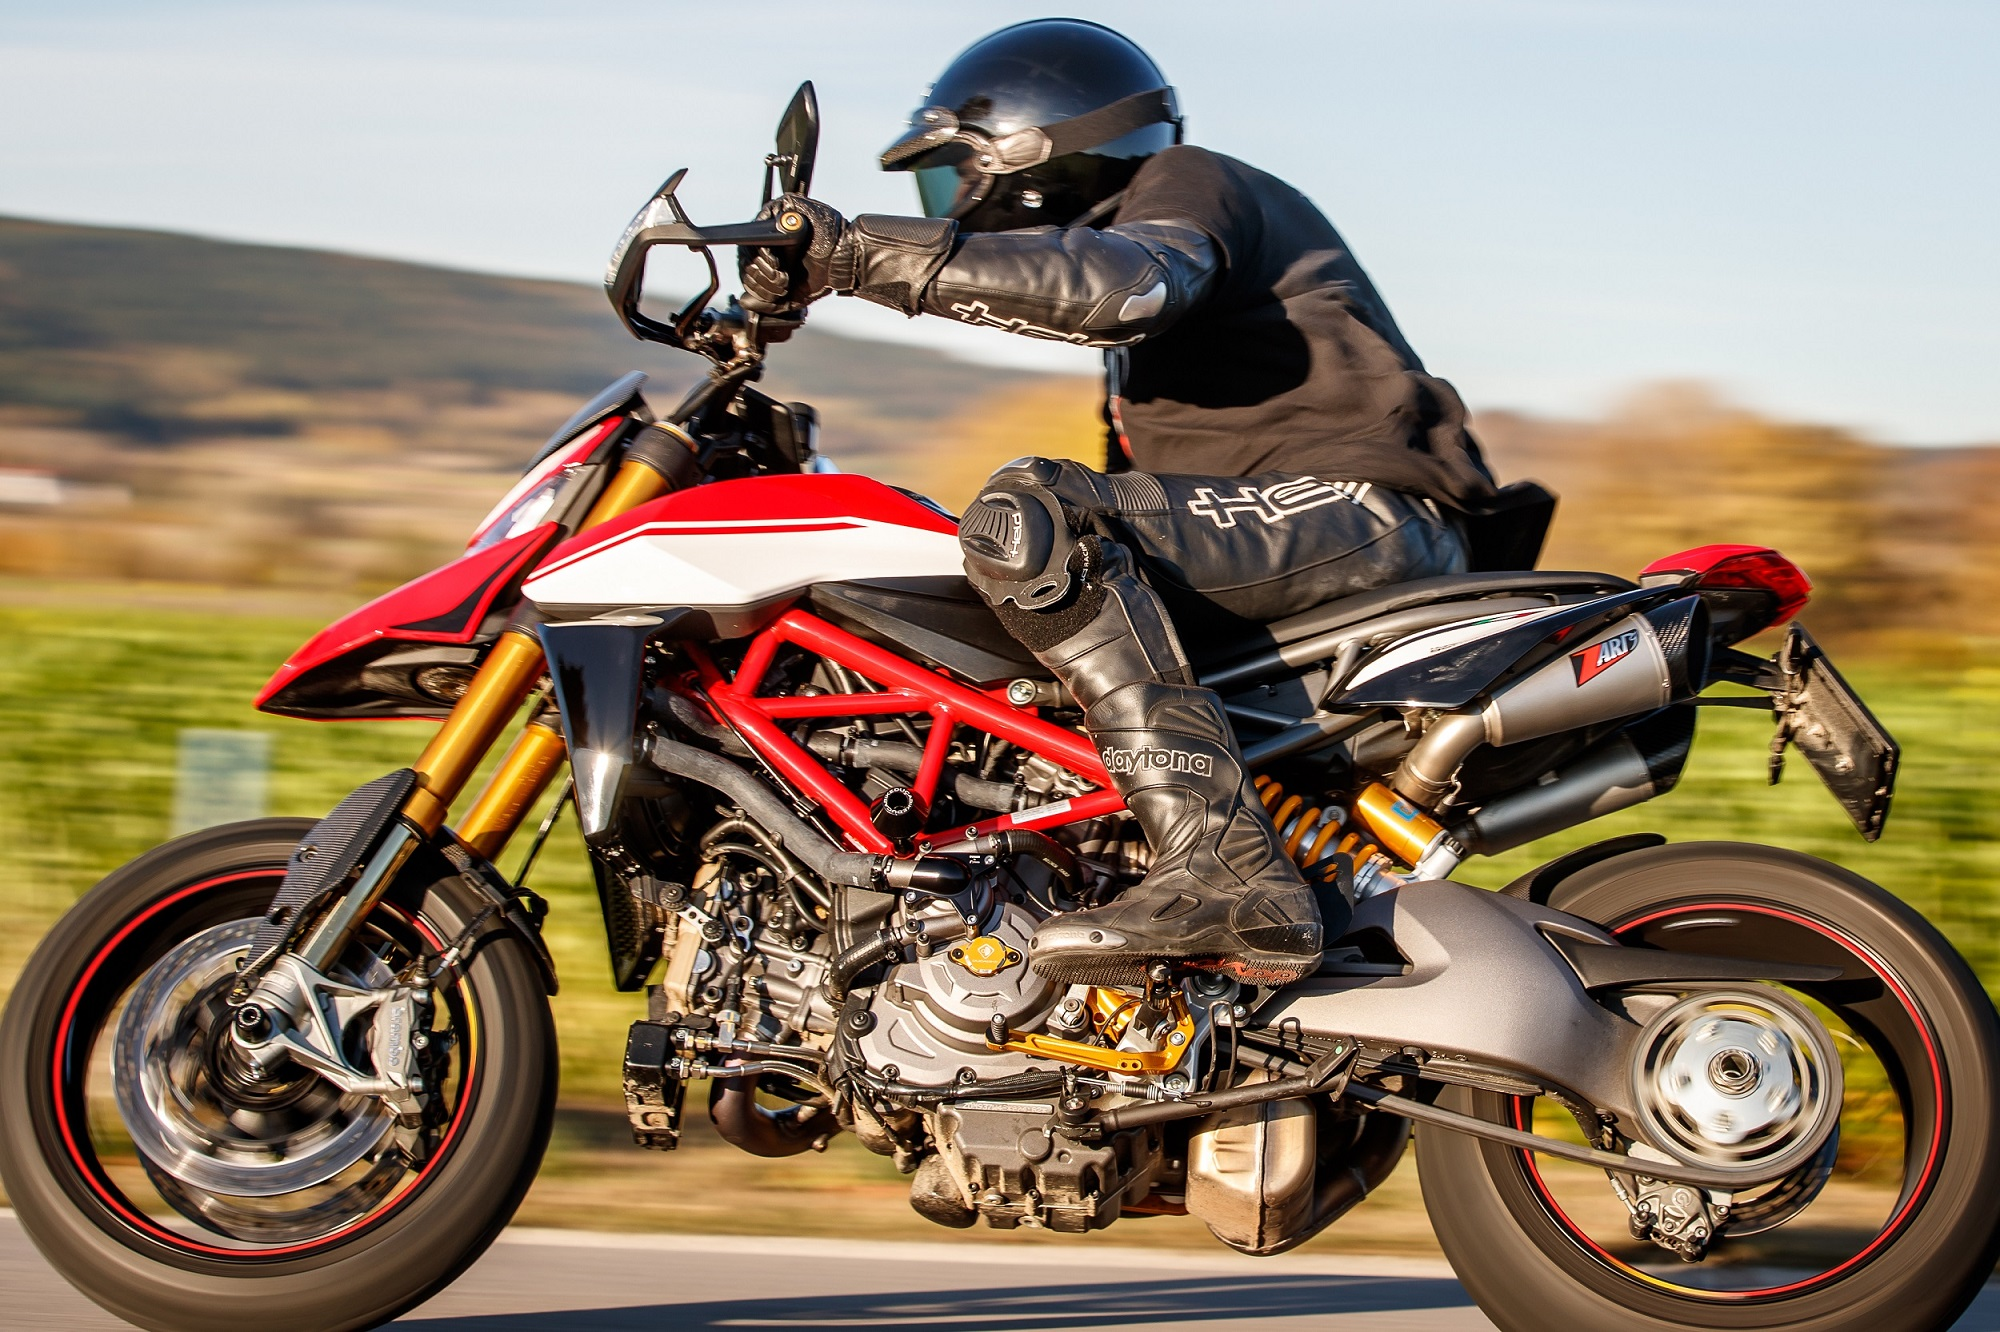 Ducati Hypermotard 950 / SP Zard Slip on 2-2 GT Version